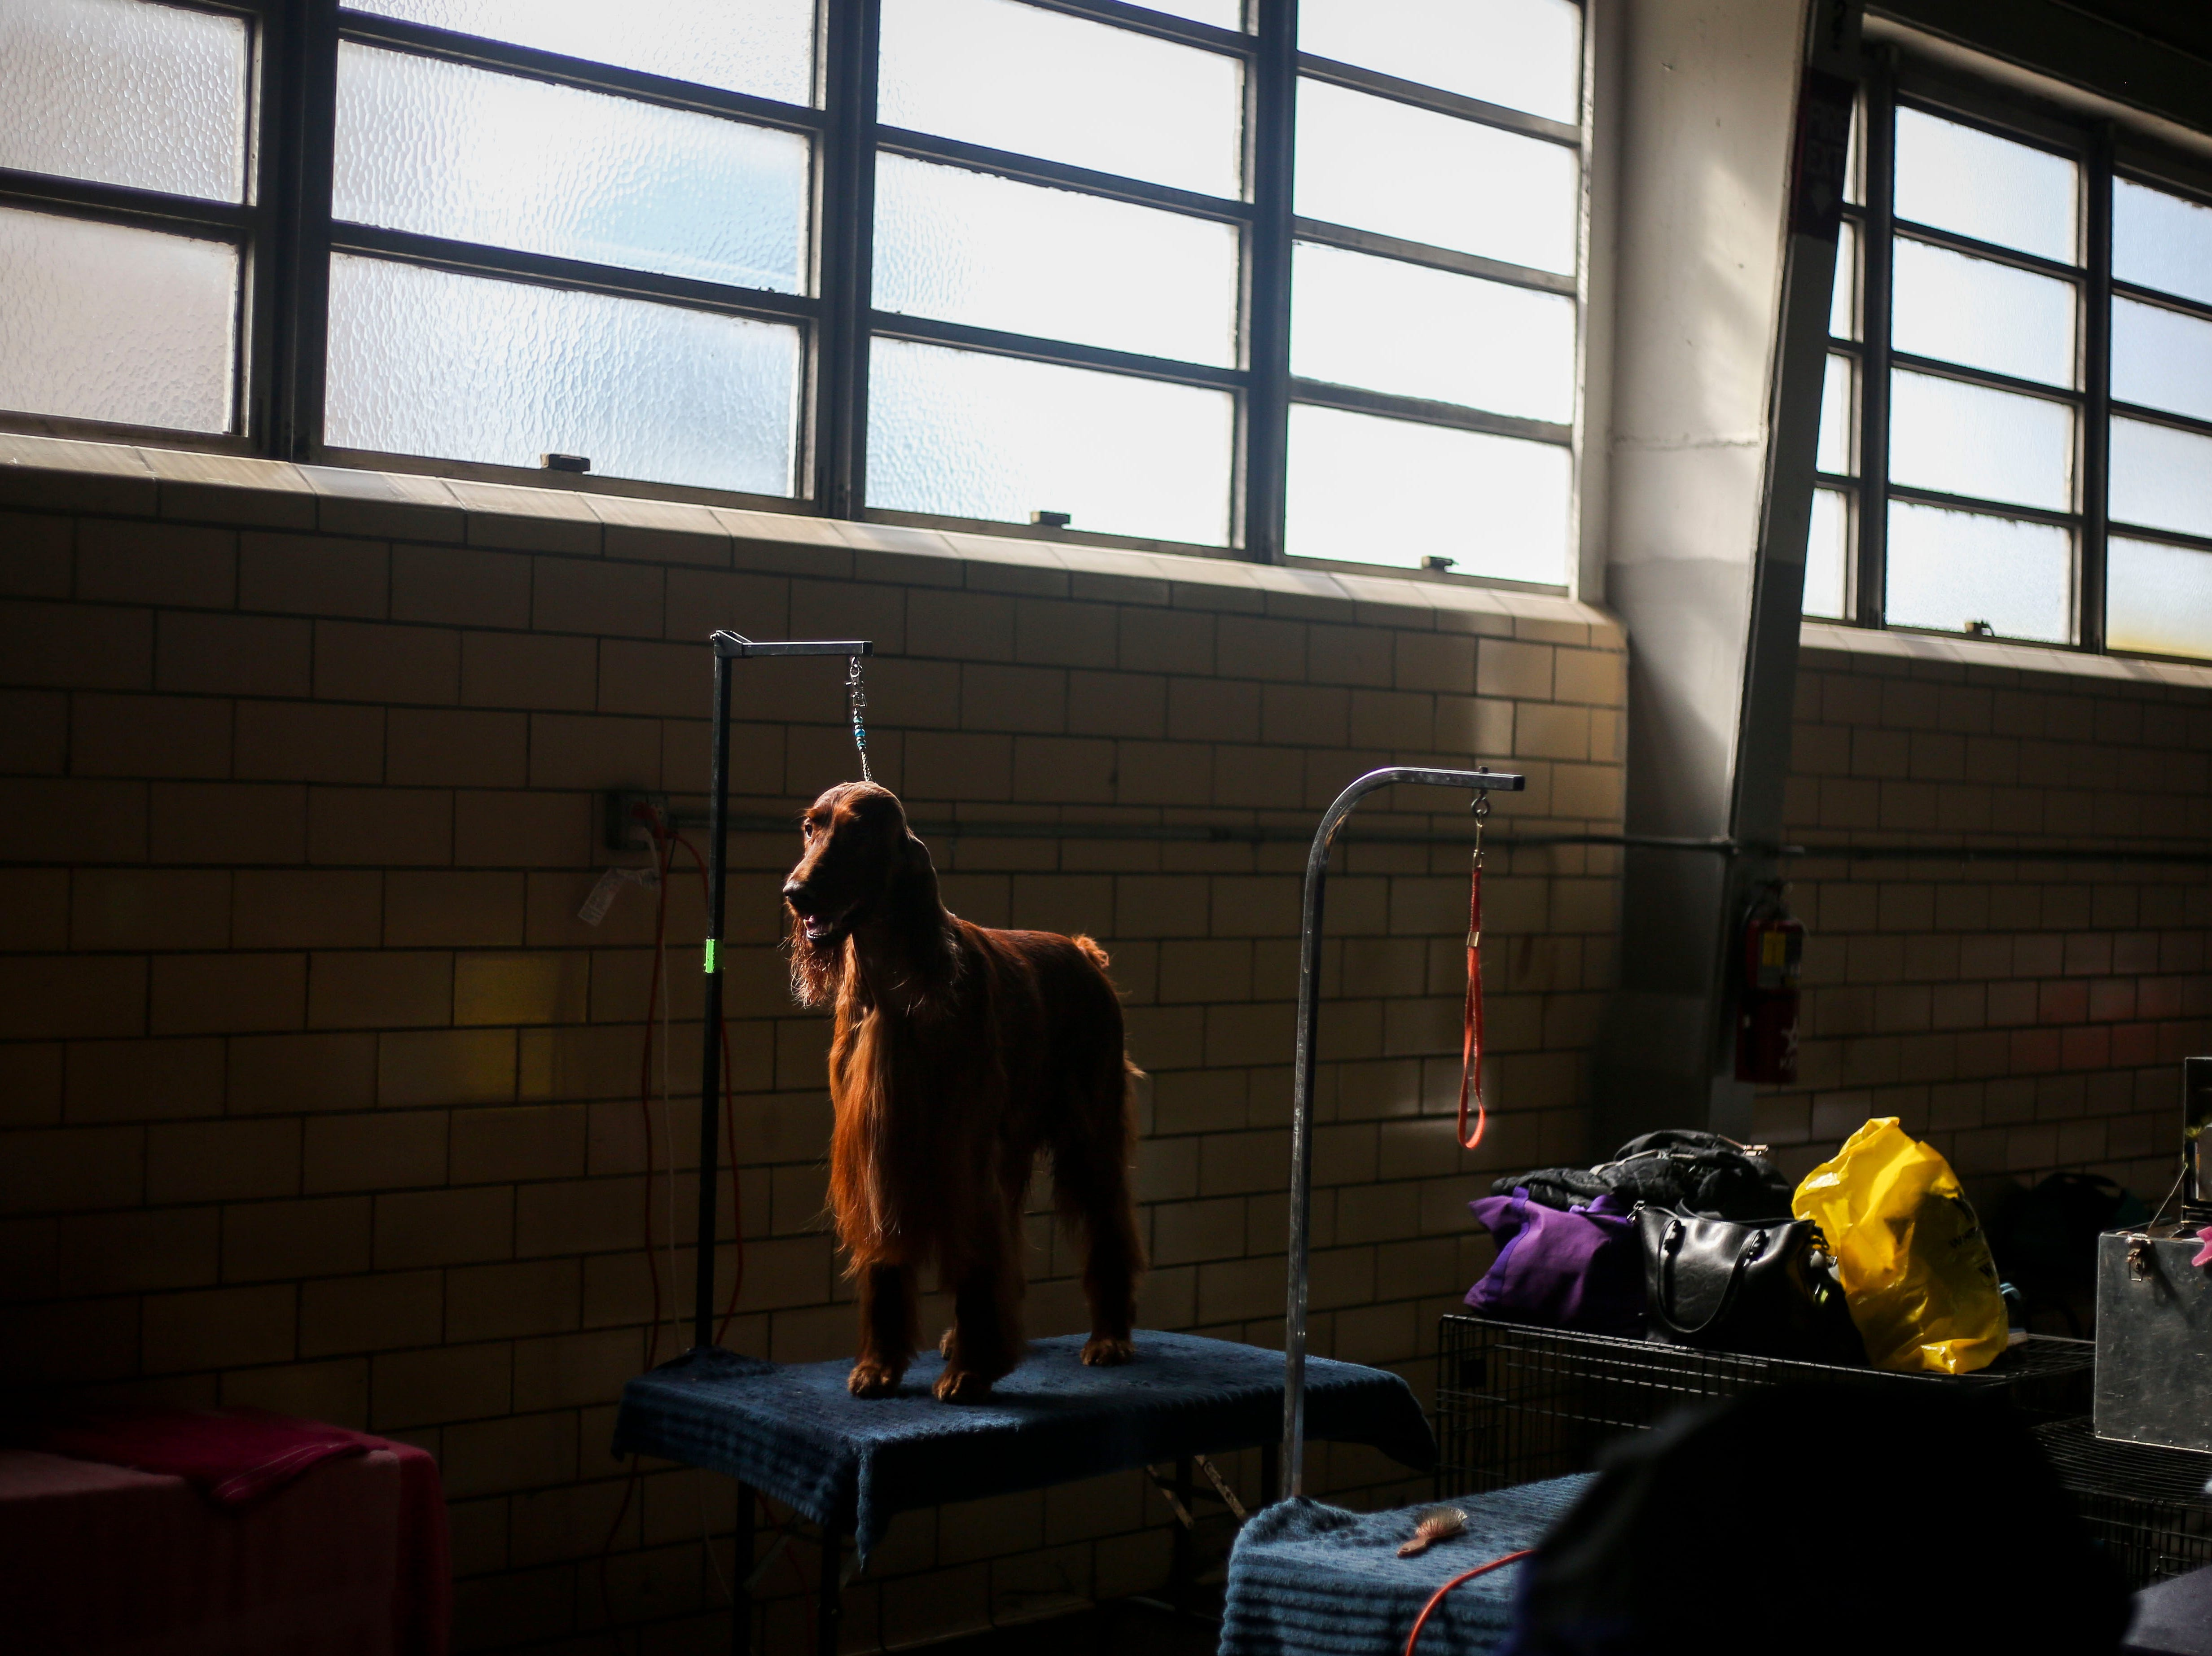 Hauken, a 3 year-old Irish Setter, waits competition during the Kentuckiana Cluster of Dog Shows at the Kentucky Fair and Exposition Center in Louisville, Ky. on Thursday, March 14, 2019.